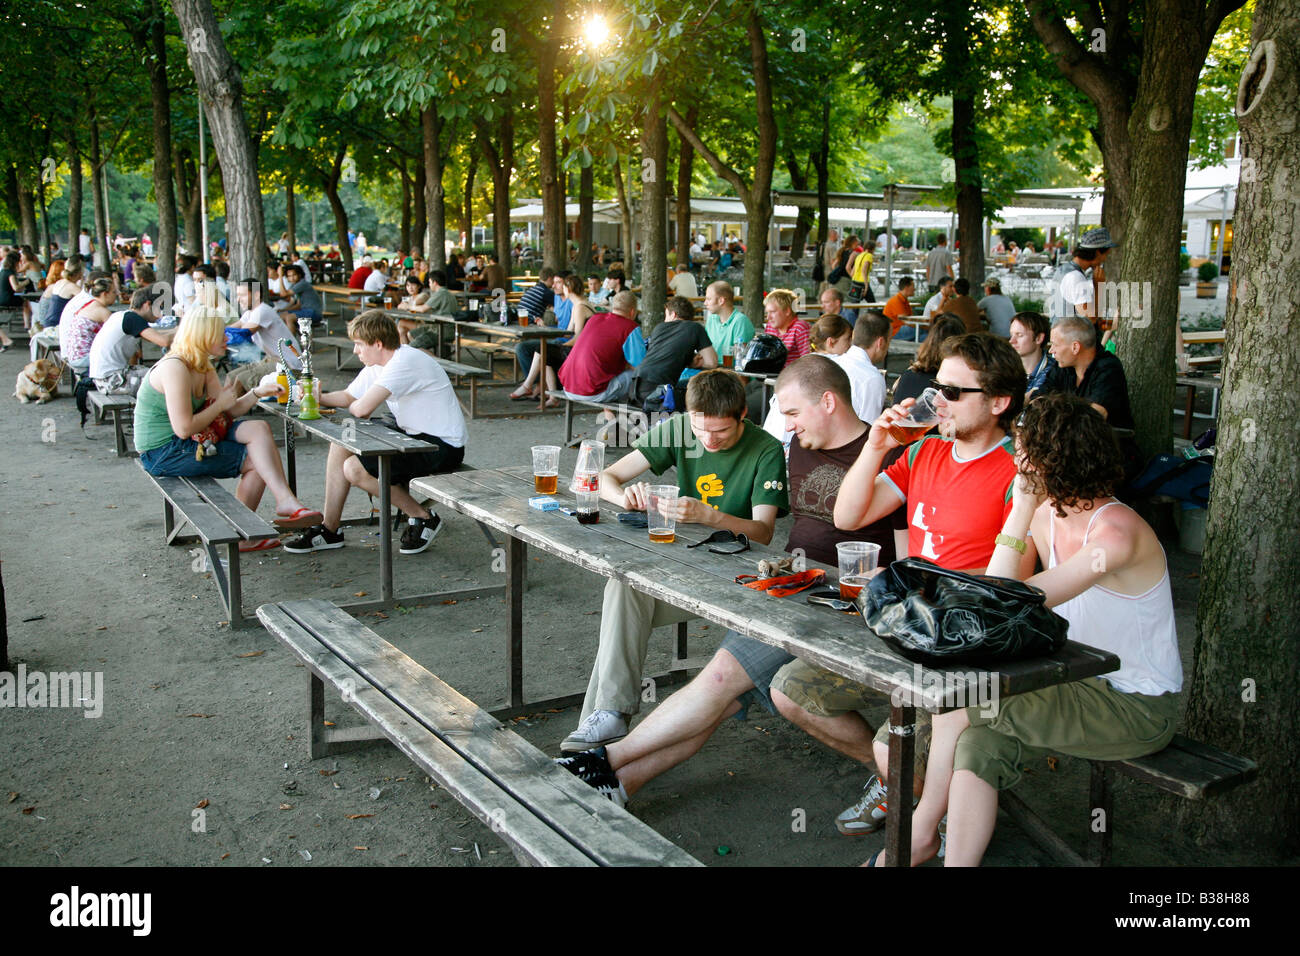 Aug 2008 - People sitting at a beer garden in Letna Park Prague Czech Republic - Stock Image